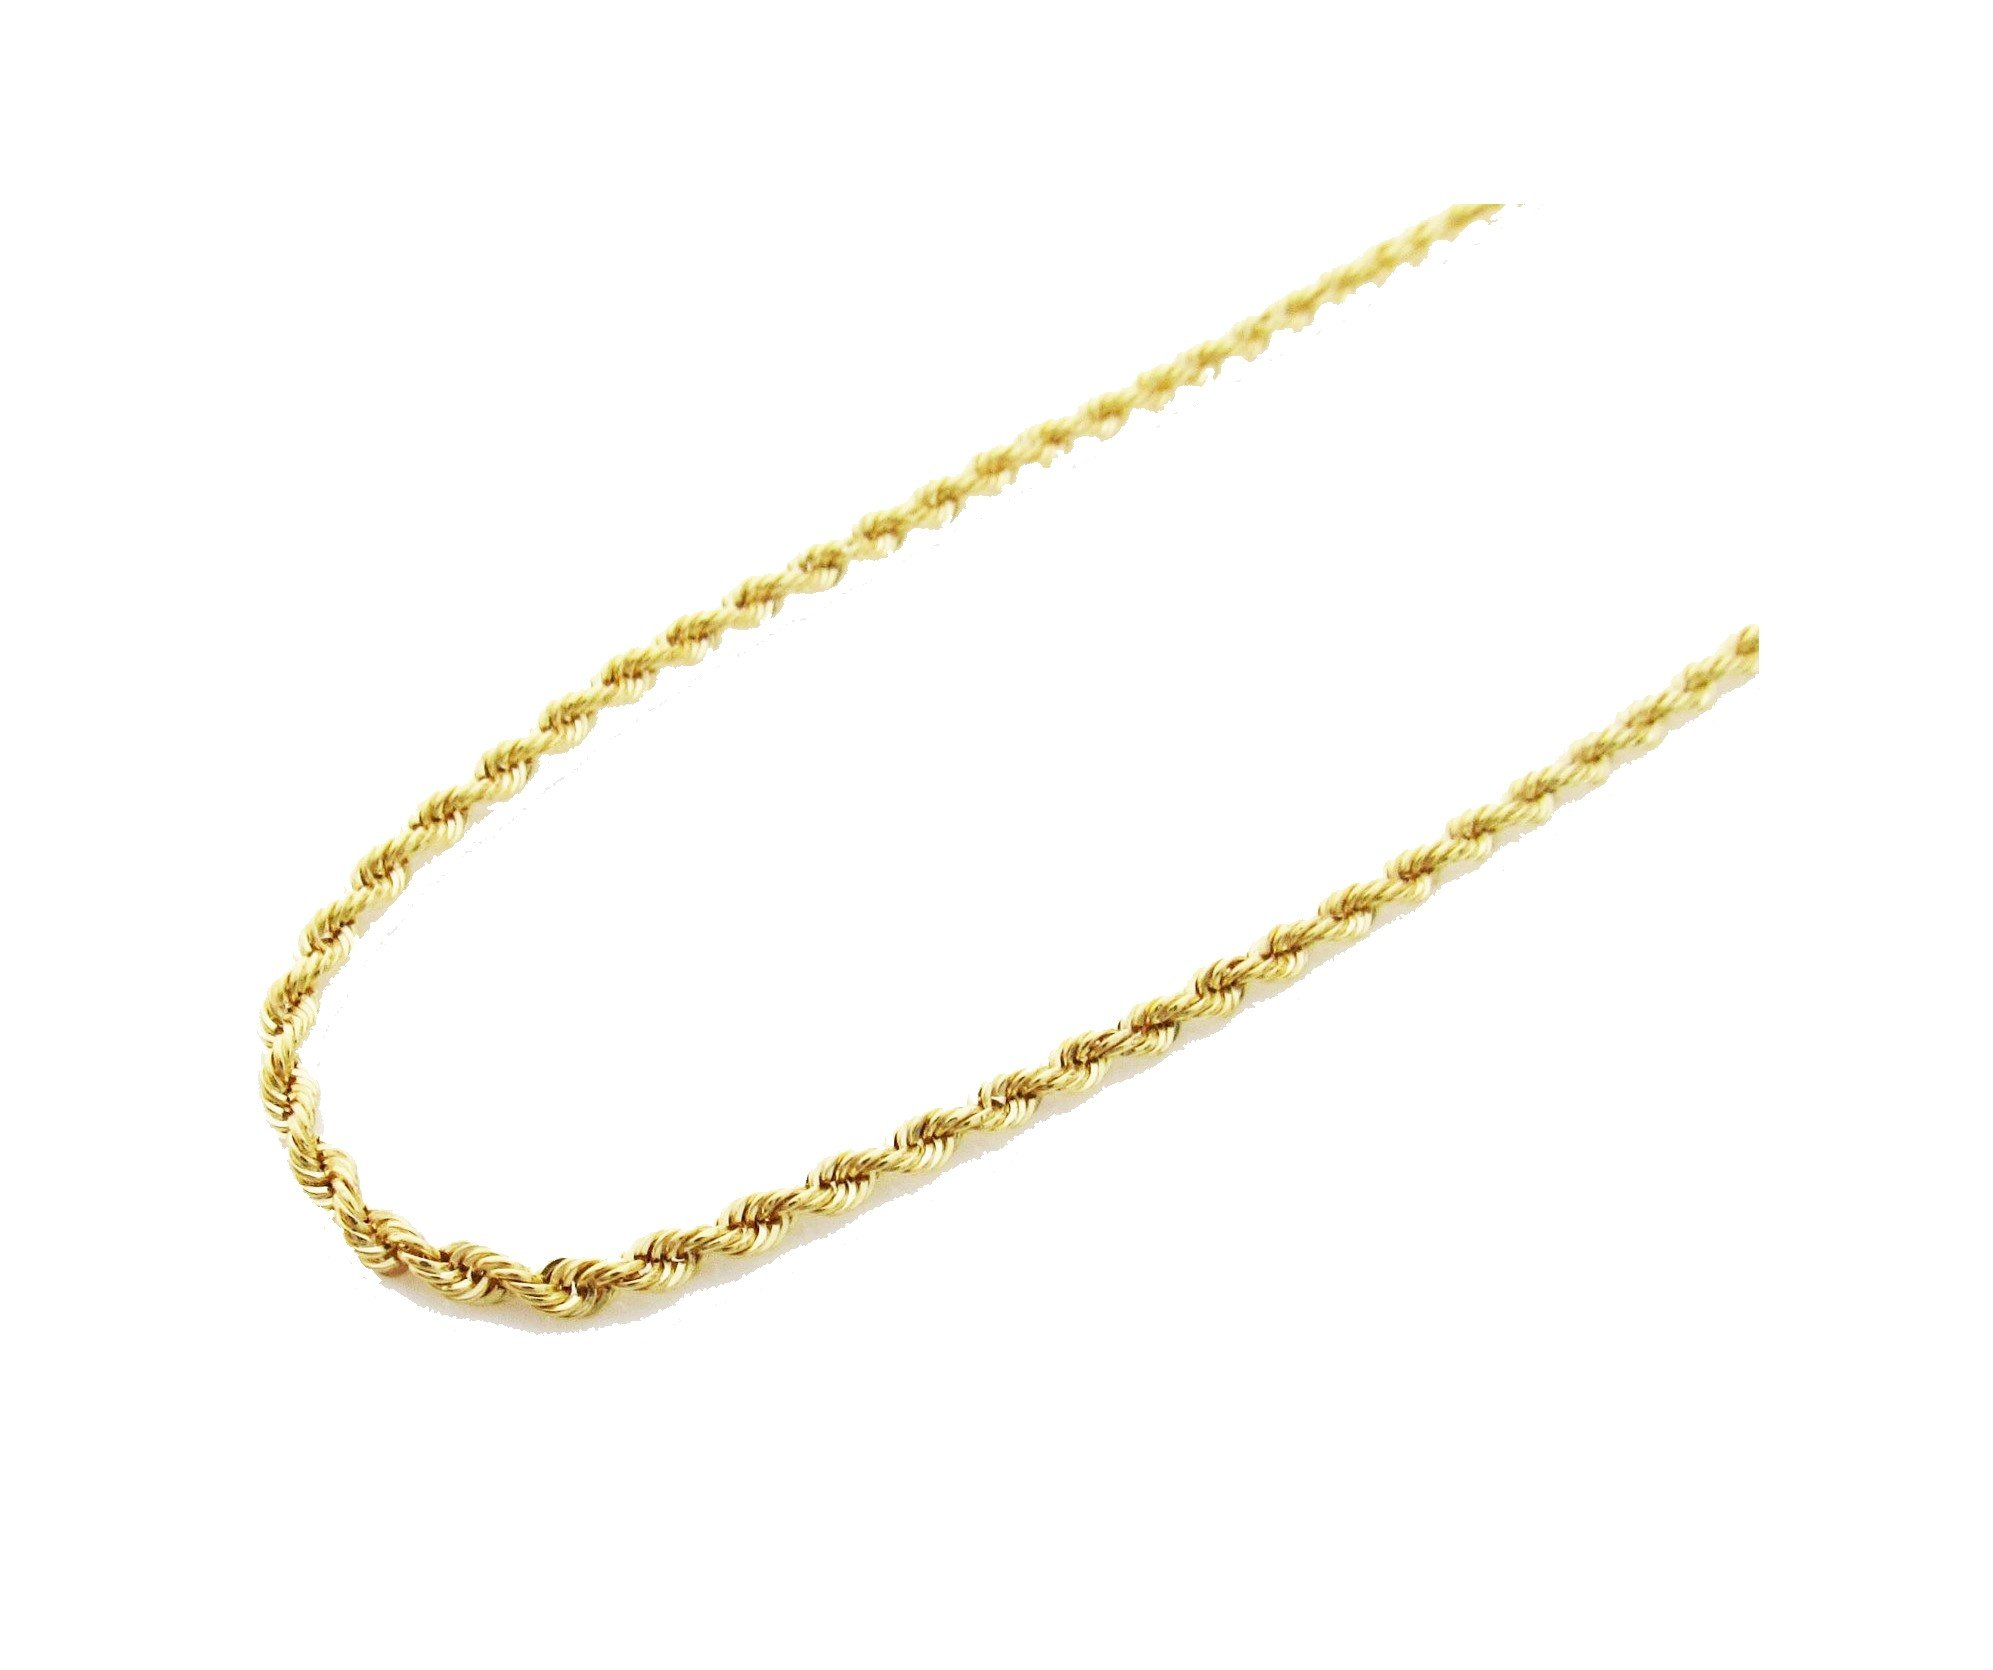 14K Gold Italy Yellow Rope Chain 20'' 2mm wide Hollow